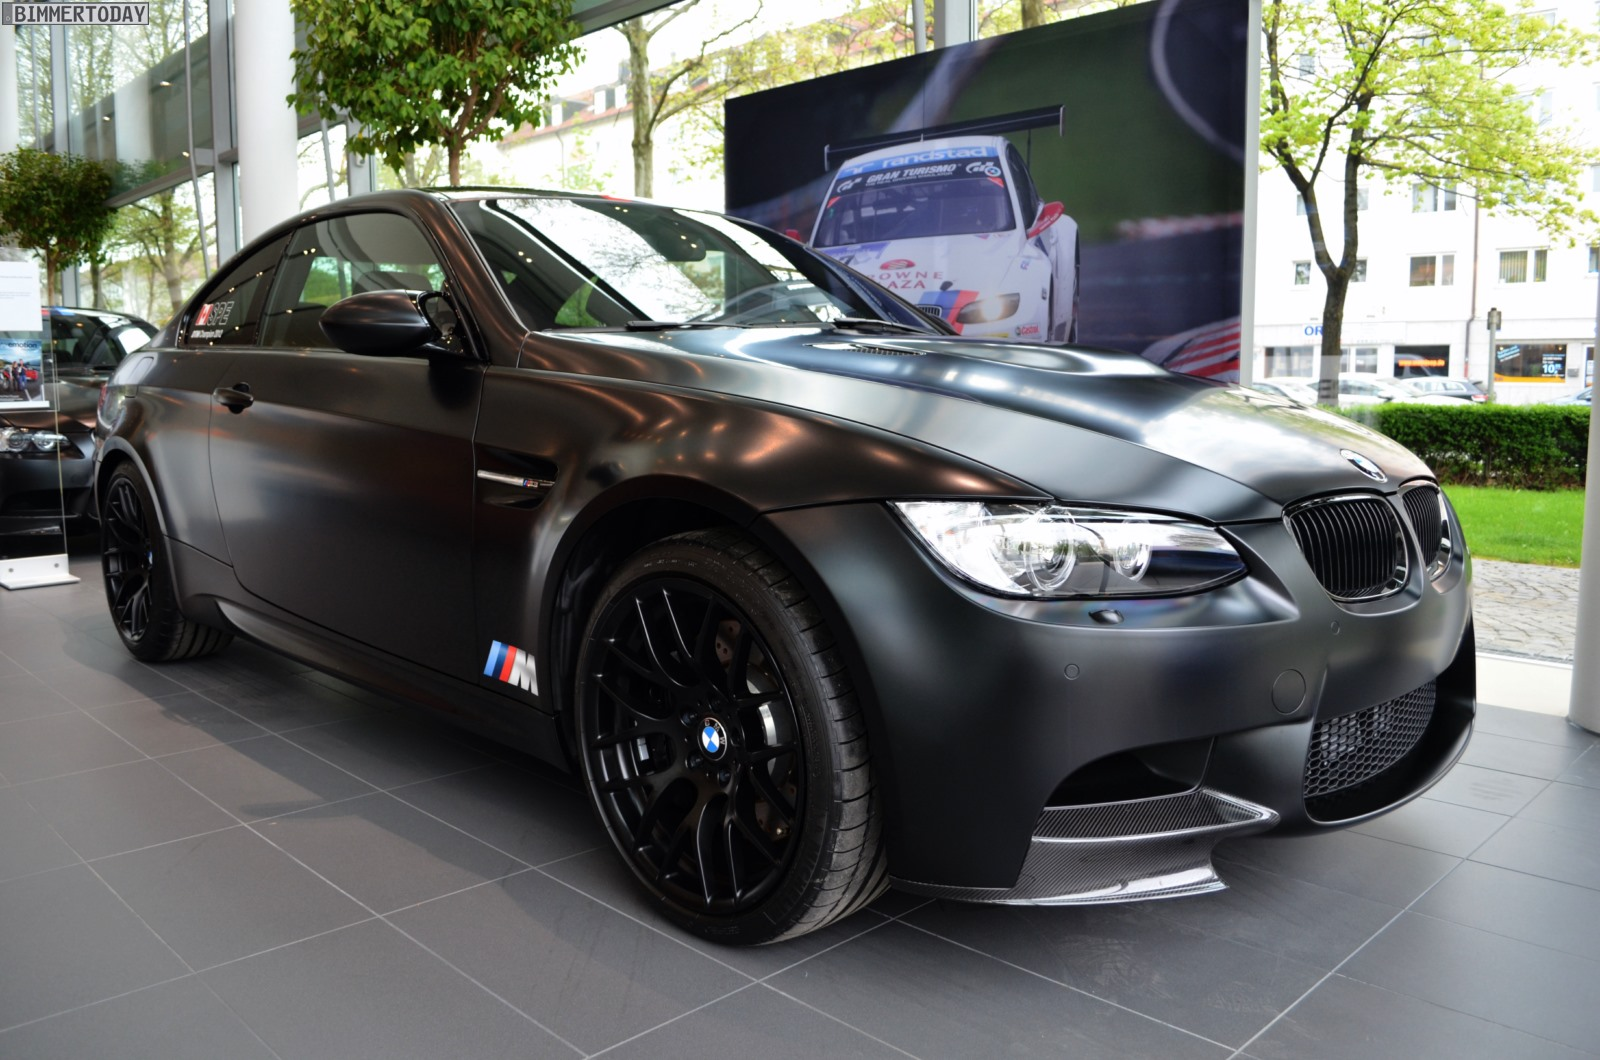 2019 Bmw M3 Dtm Champion Edition Car Photos Catalog 2019